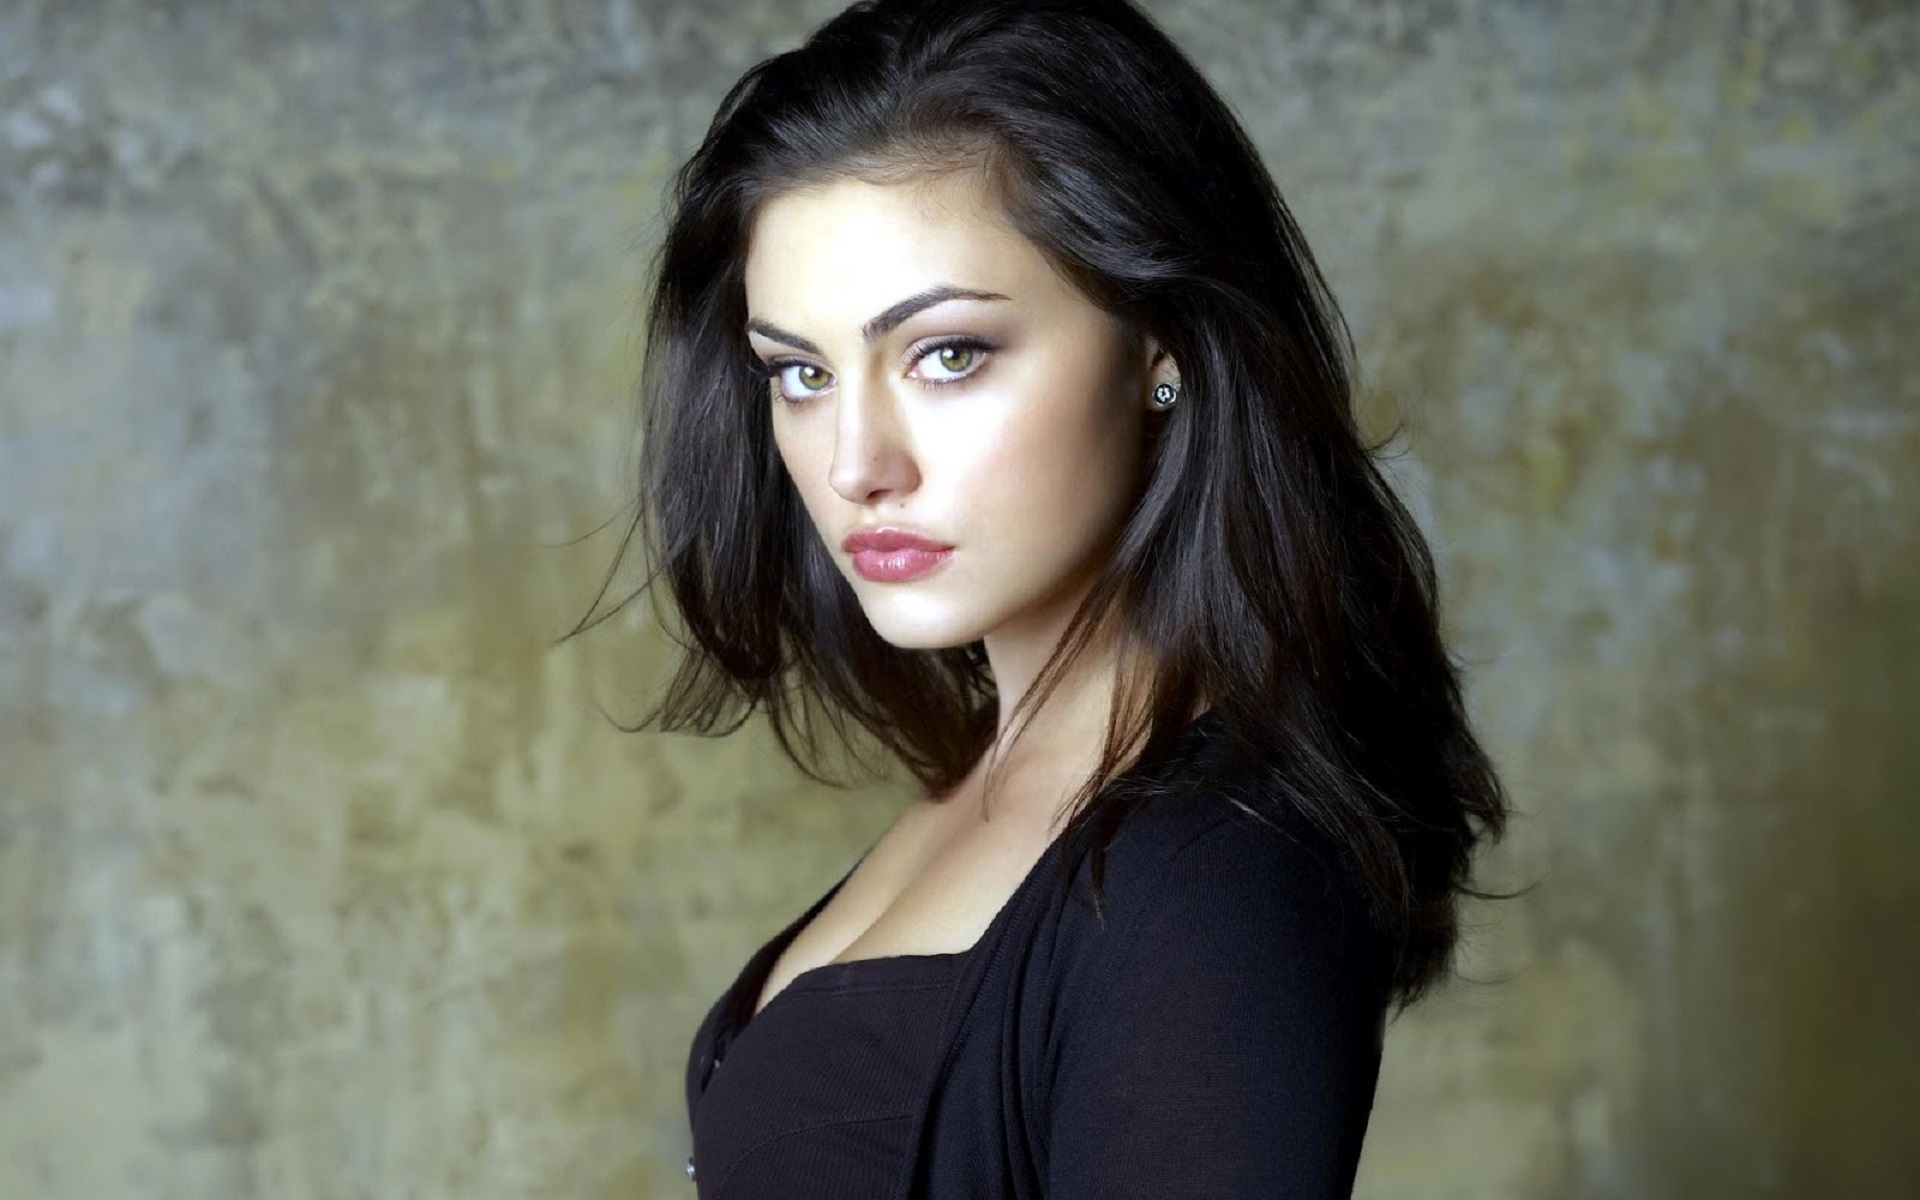 Daily Phoebe Tonkin Photos